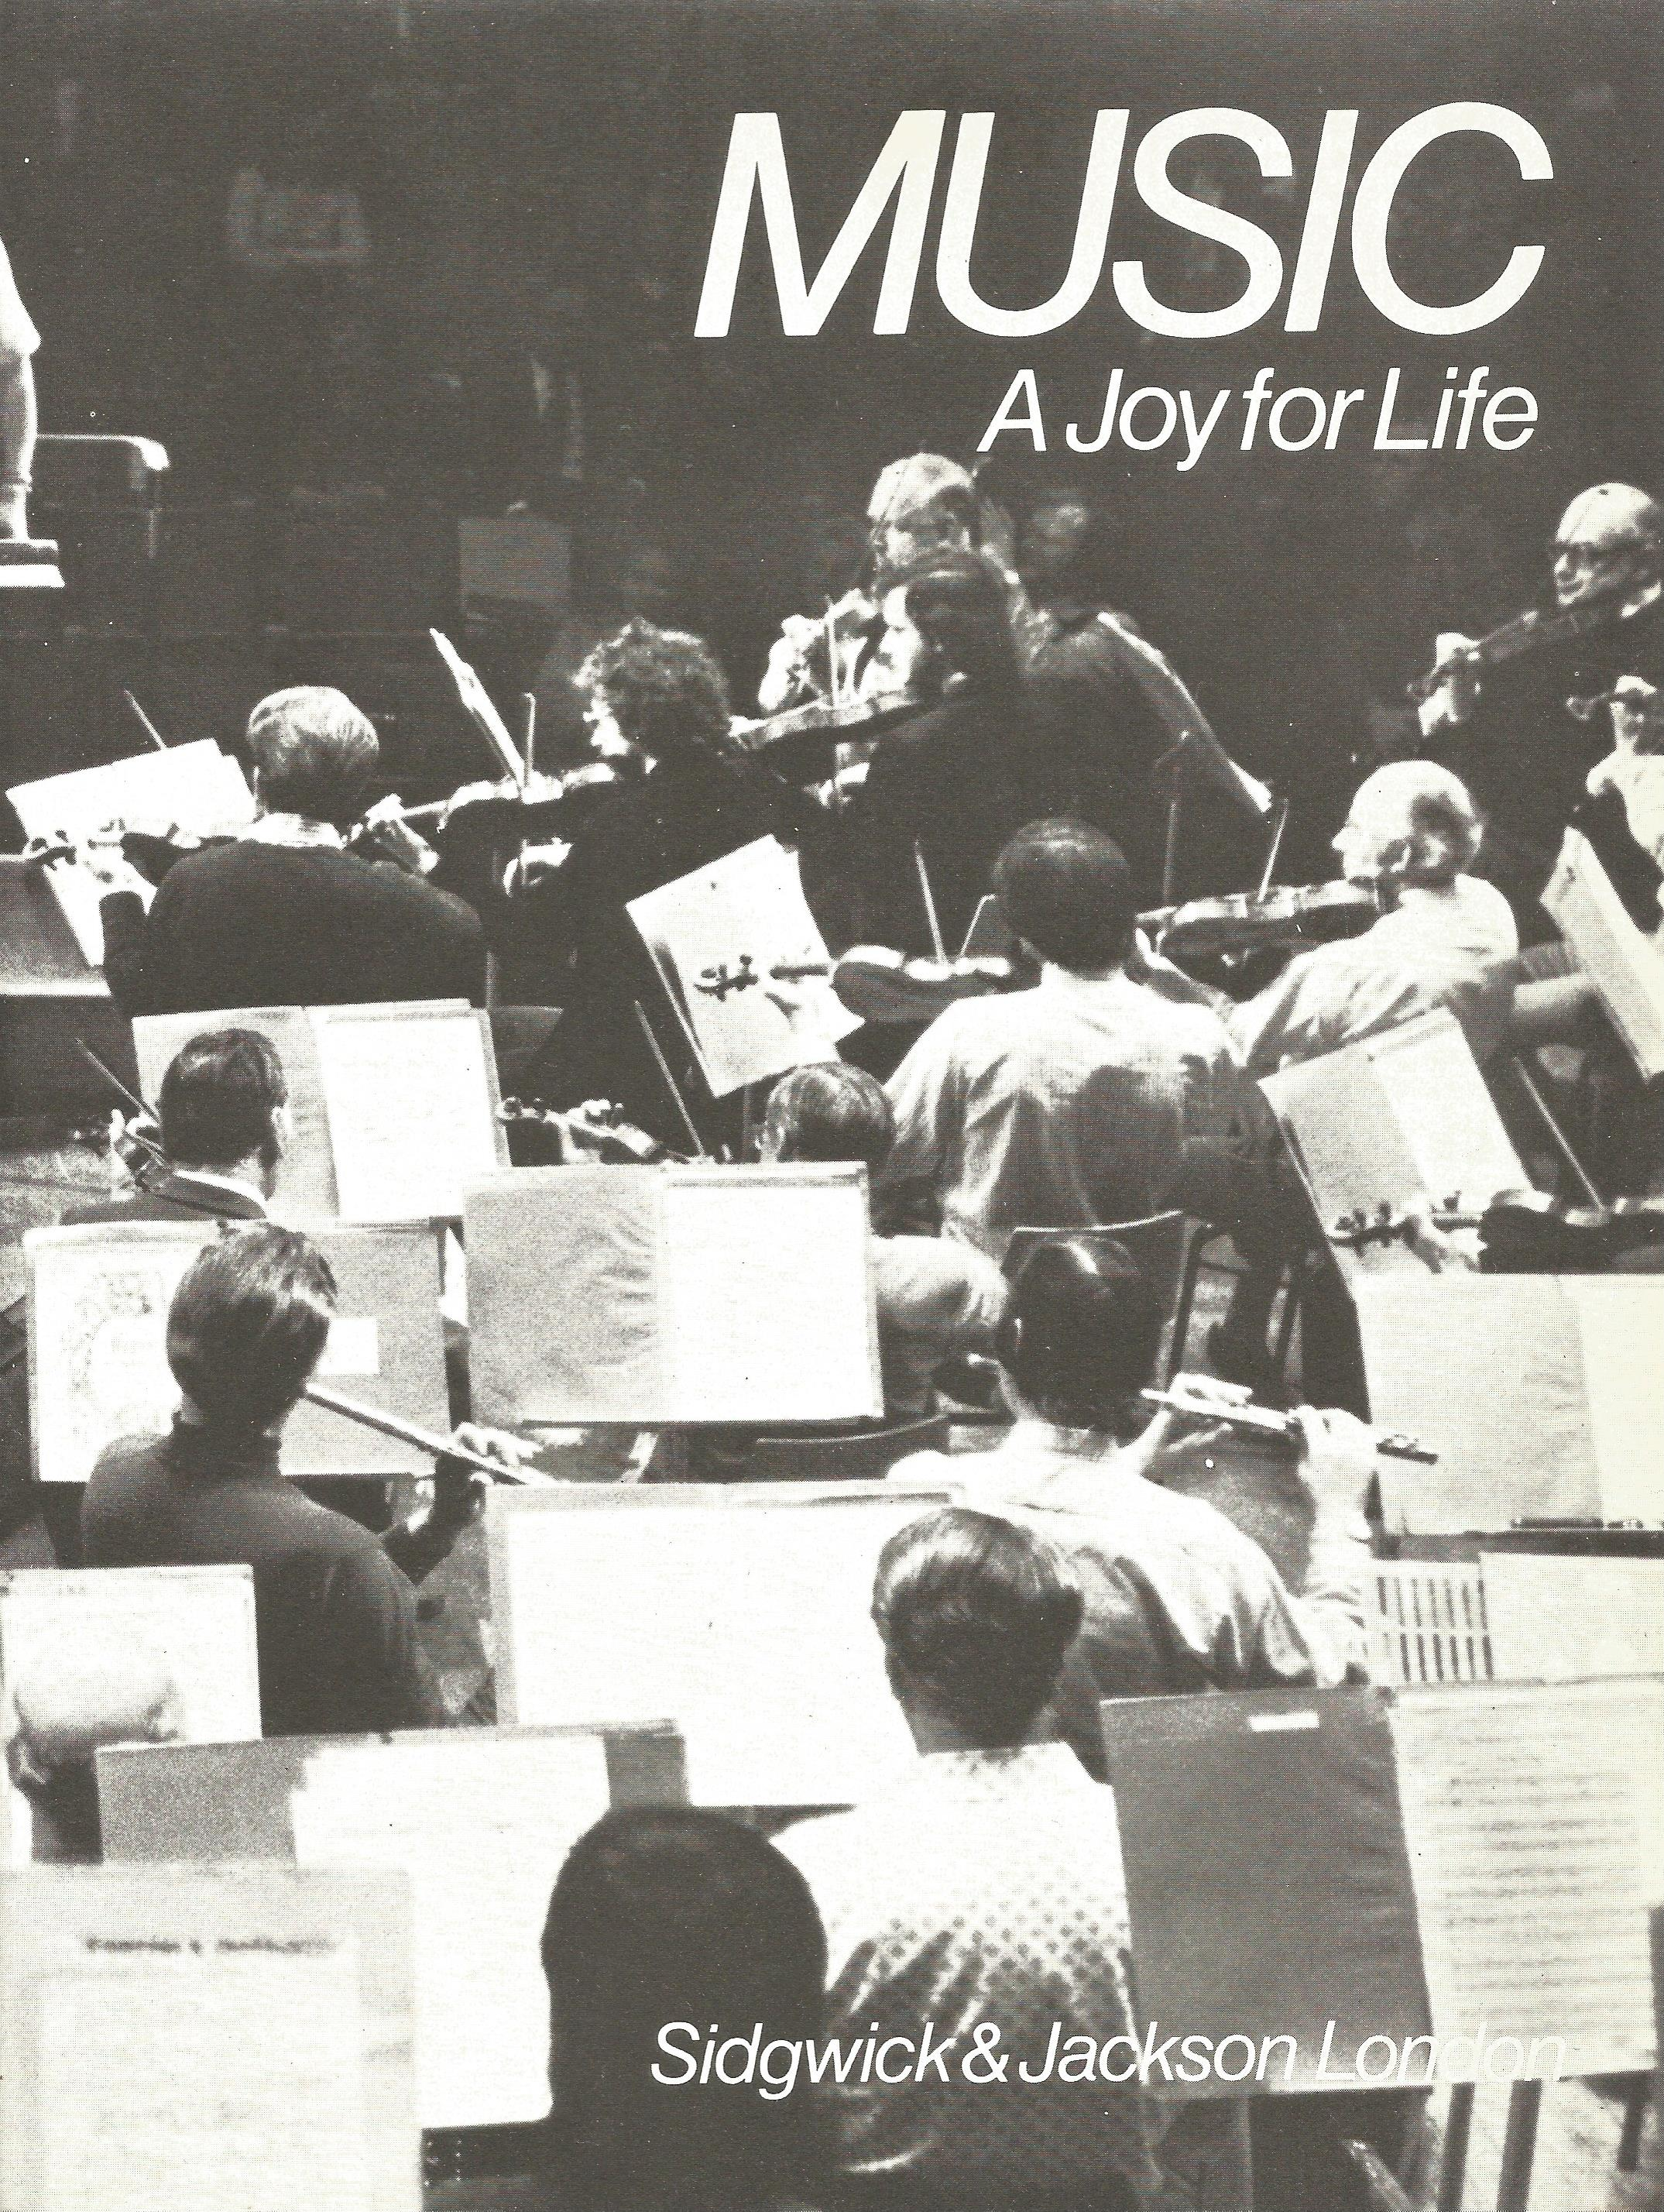 Edward Heath Signed Hardback Book Music A Joy for Life First Edition 1976 published by Sidgwick & - Image 2 of 4